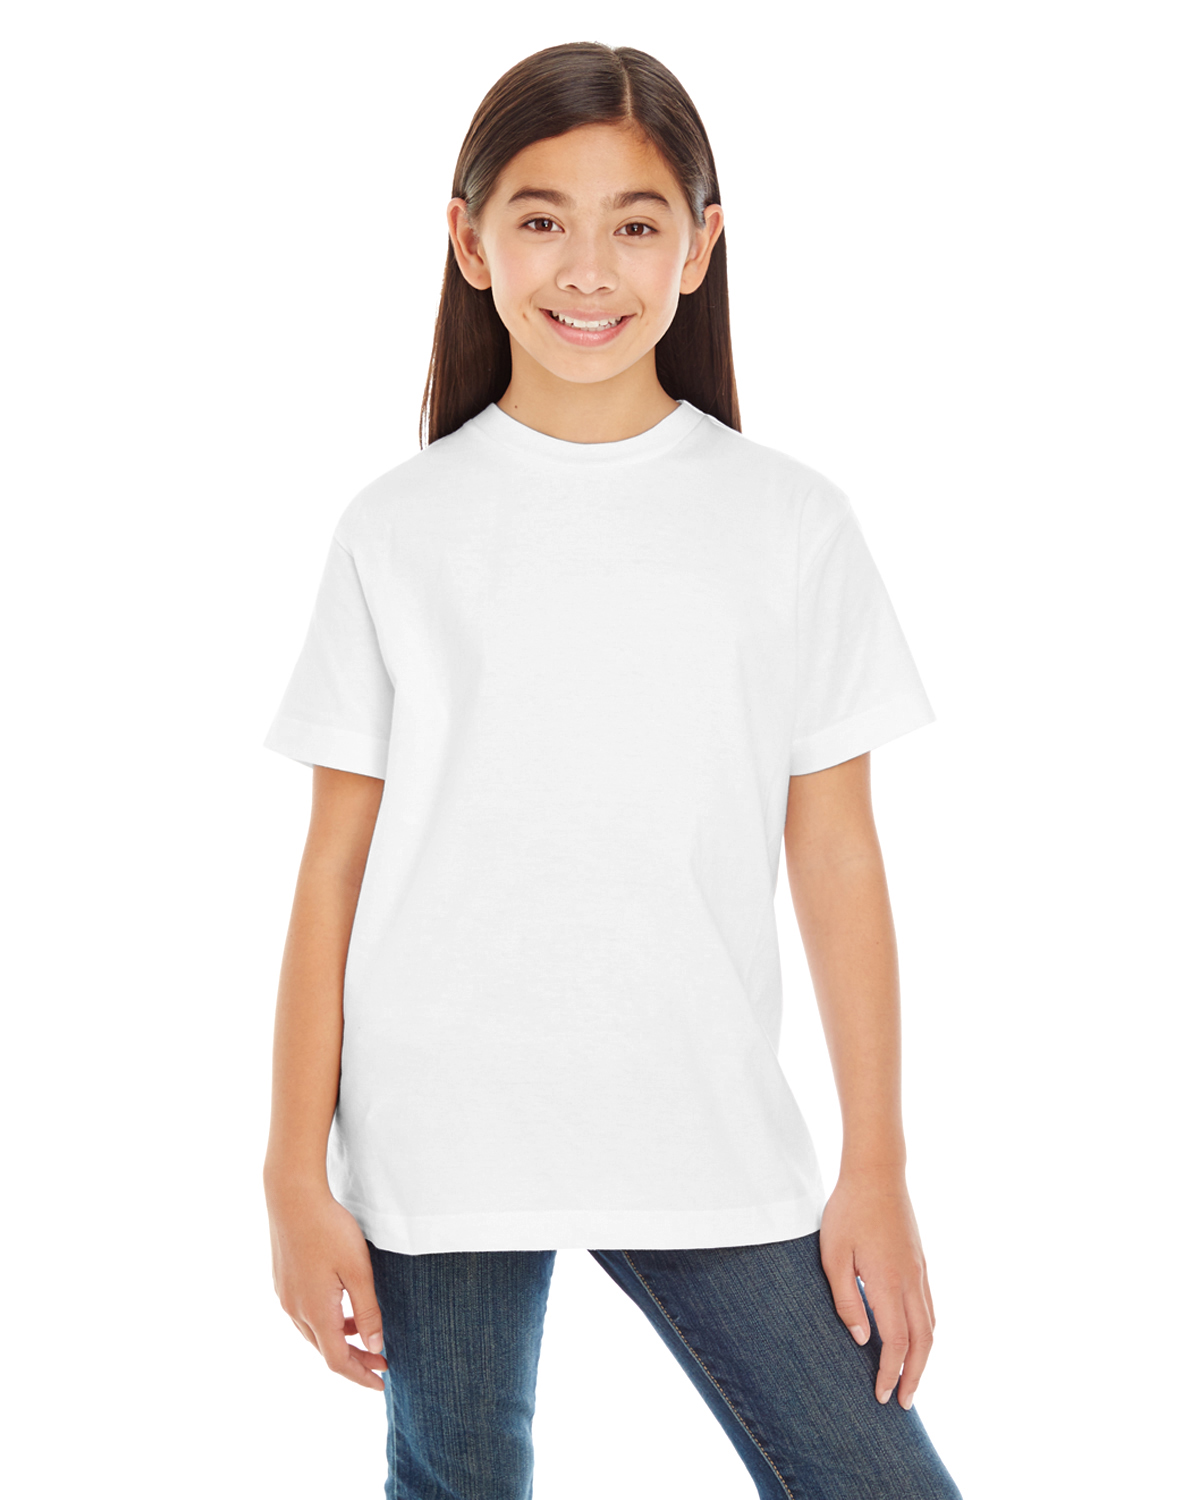 Youth Premium Jersey T-Shirt